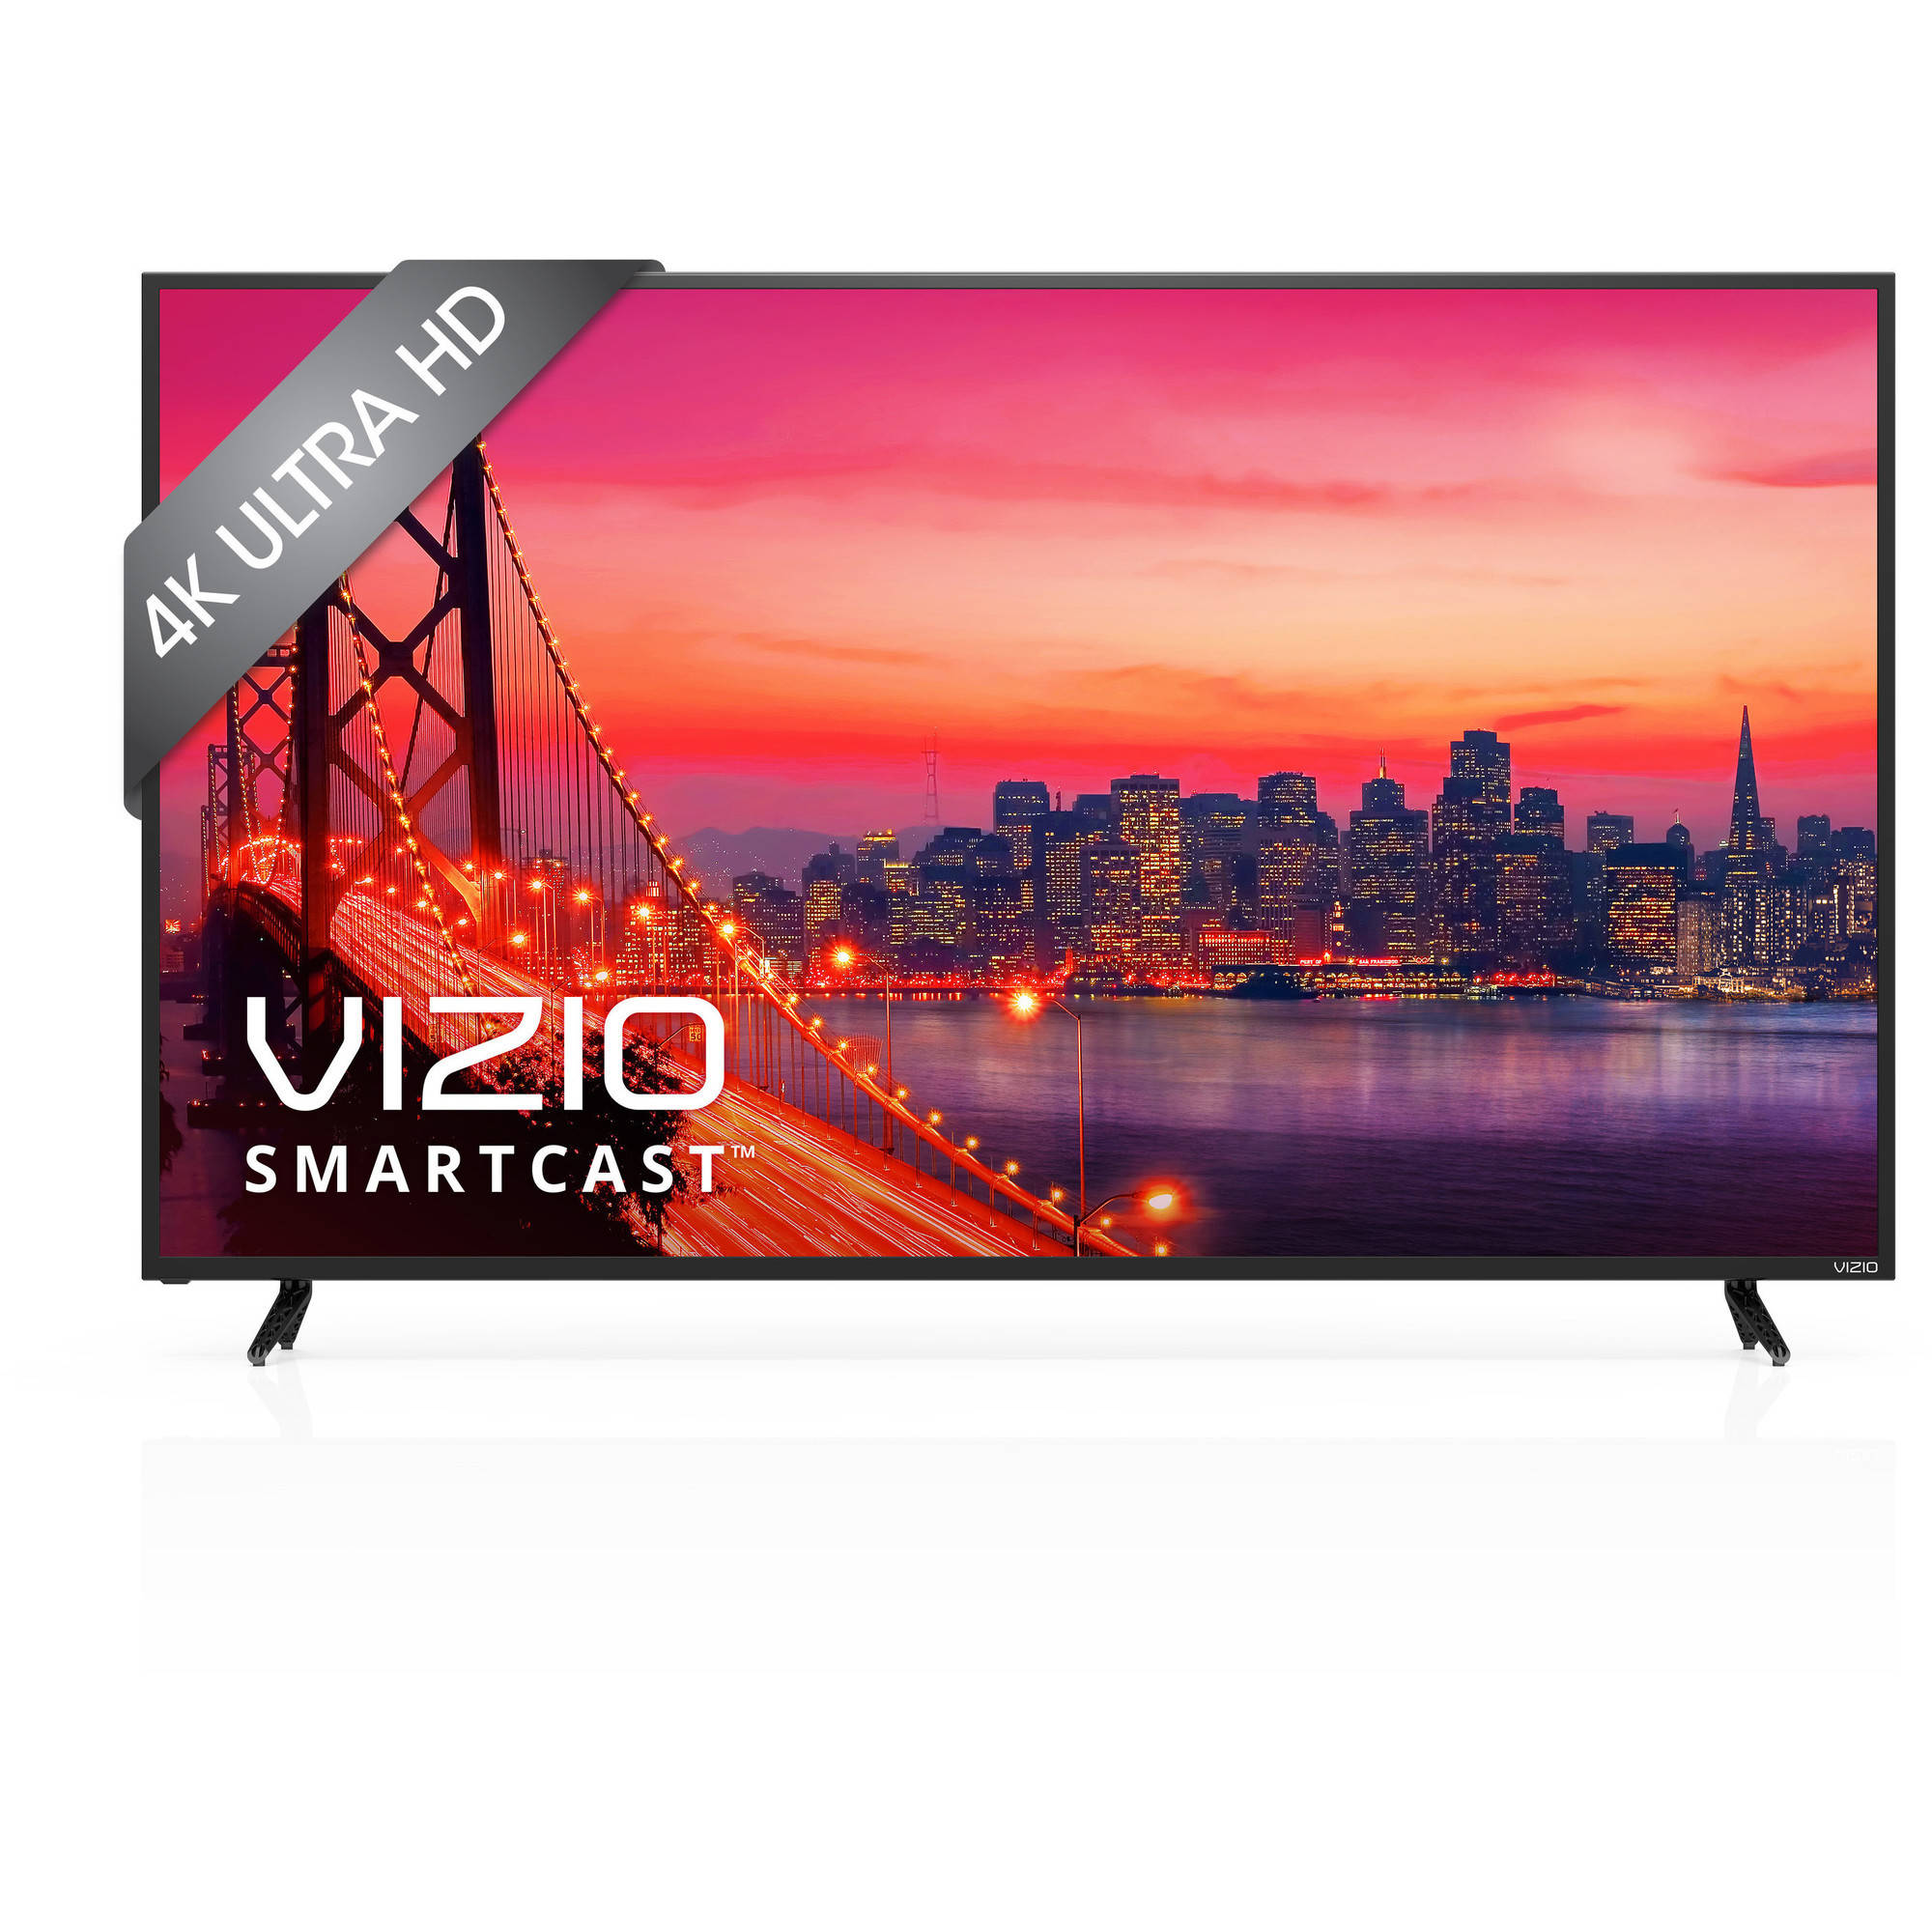 VIZIO SmartCast E-series 65 Class (64.5 diag.) Ultra HD Home Theater Display w/ Chromecast built-in